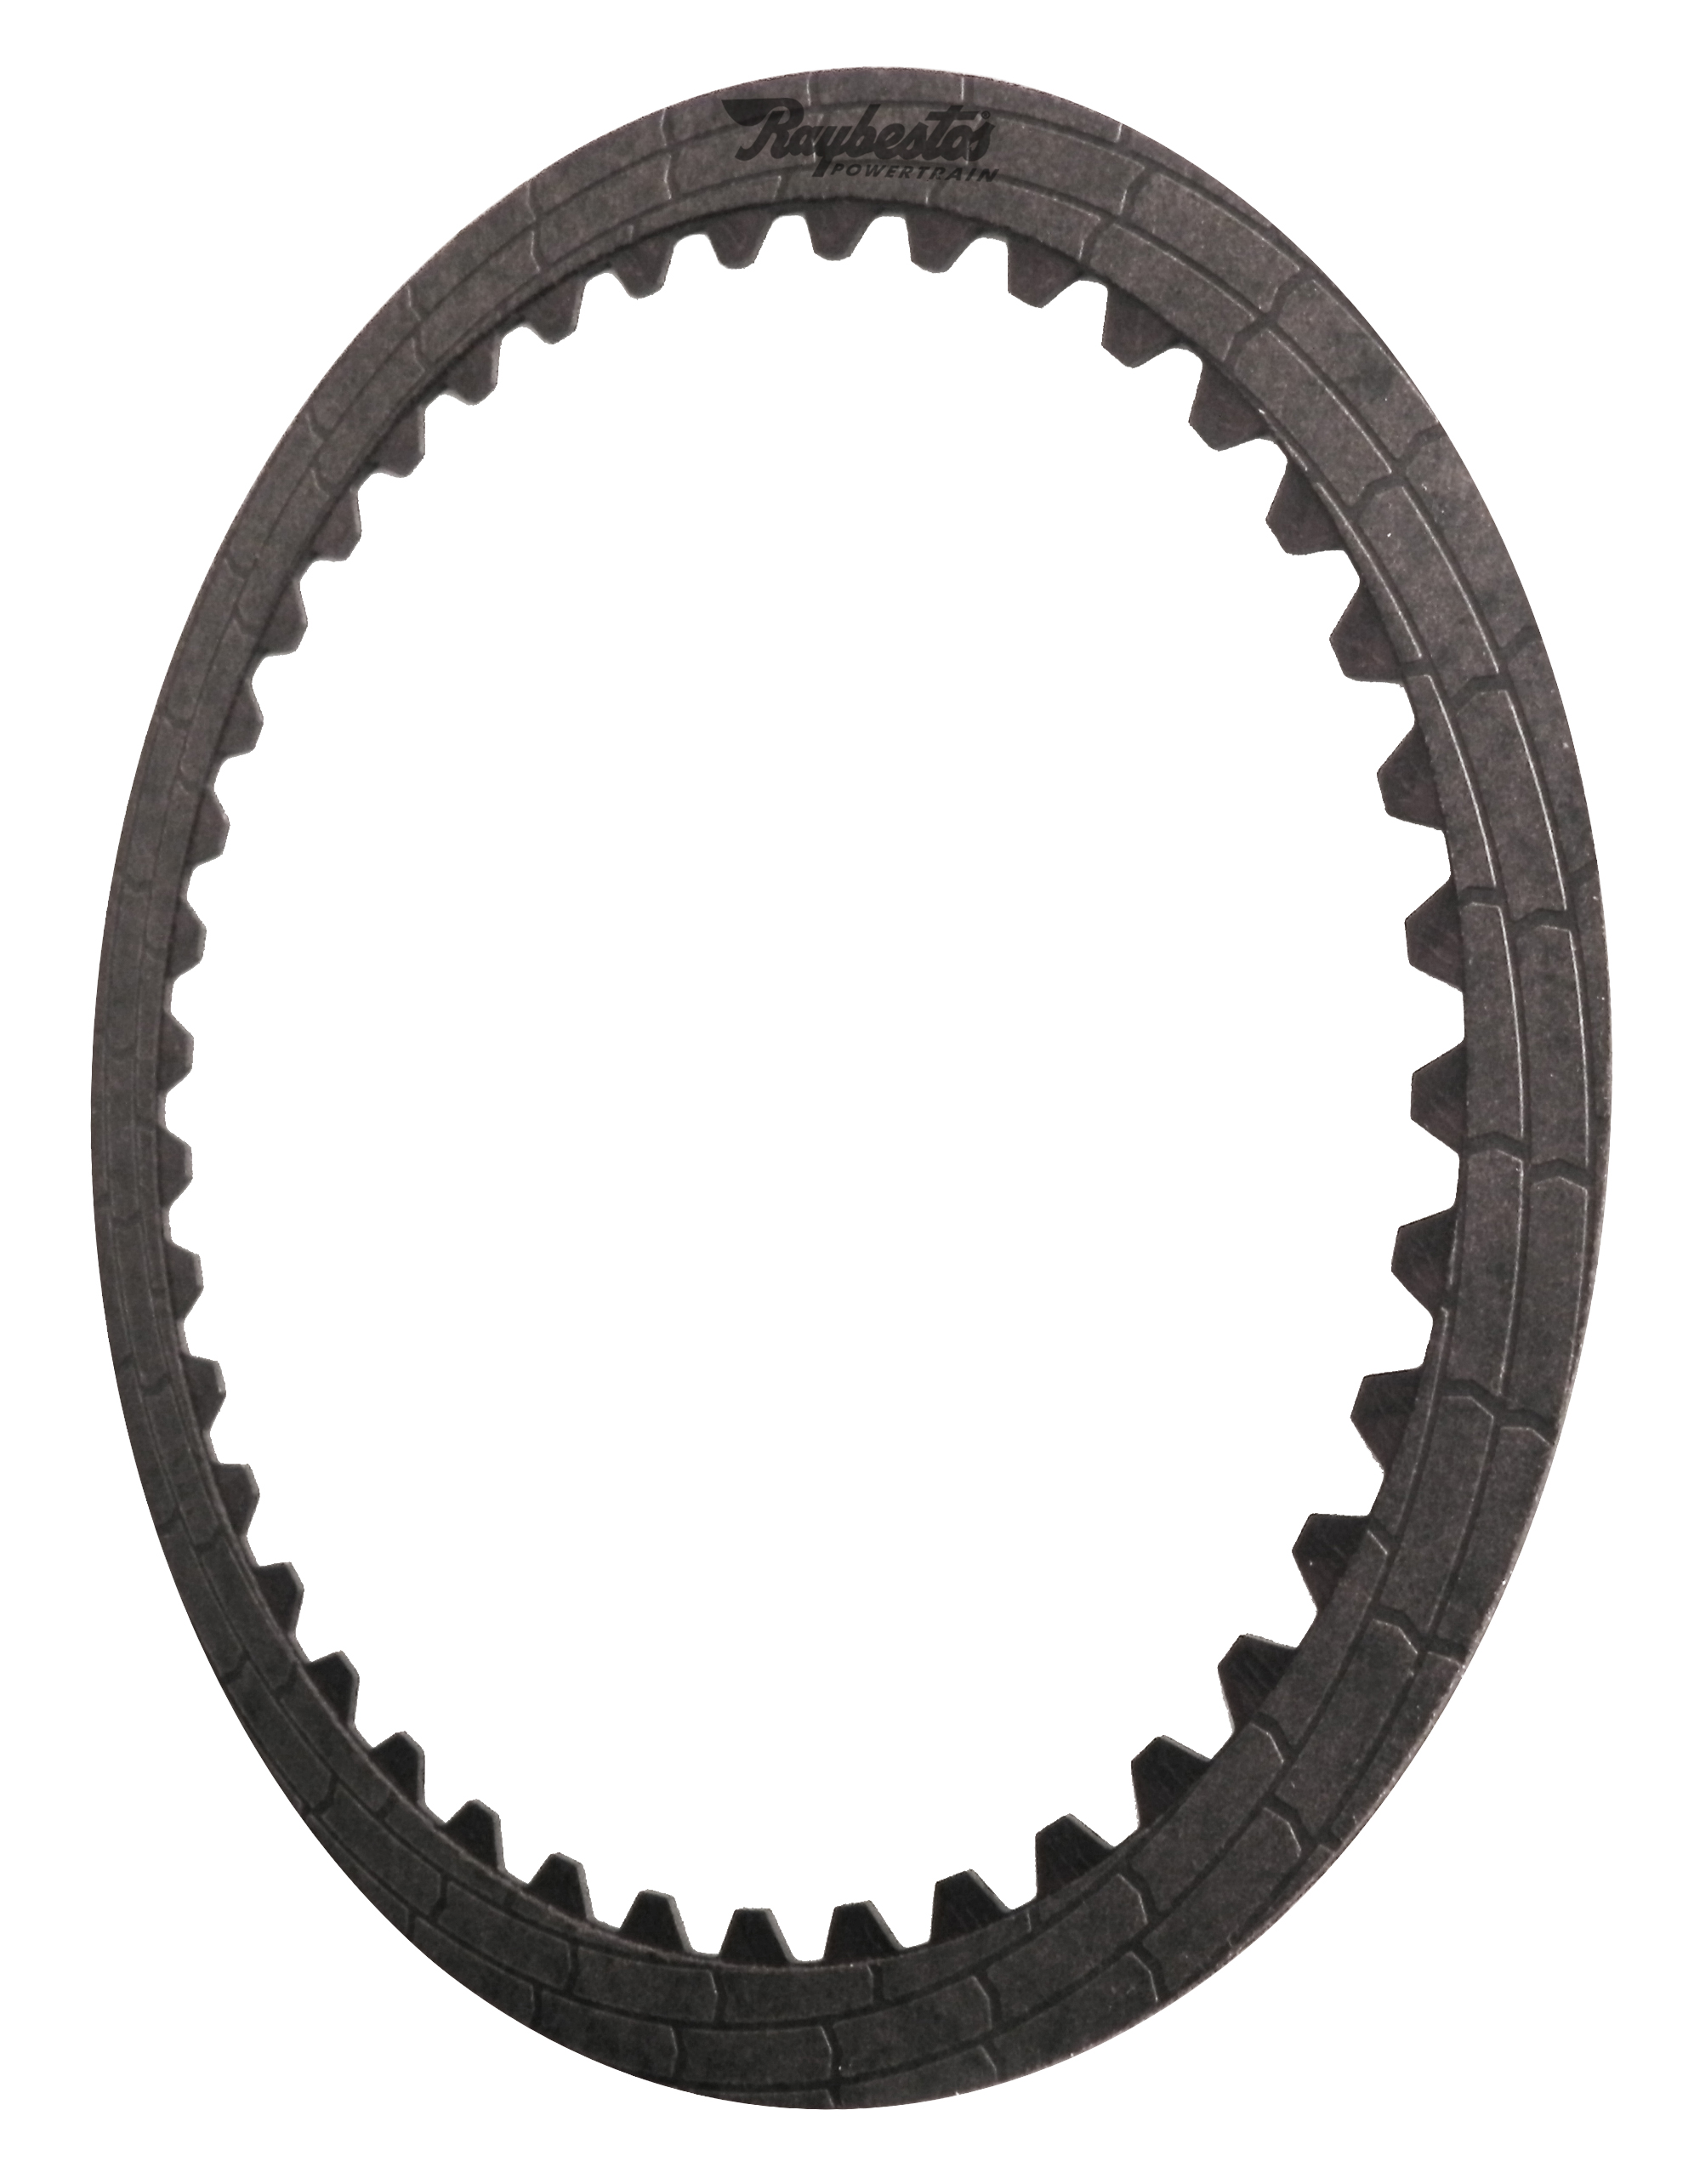 RH558580 | 2007-ON Friction Clutch Plate (HT) Hybrid Technology #3 Brake Clutch (3-5) (Reverse) Proprietary High Energy (HT)